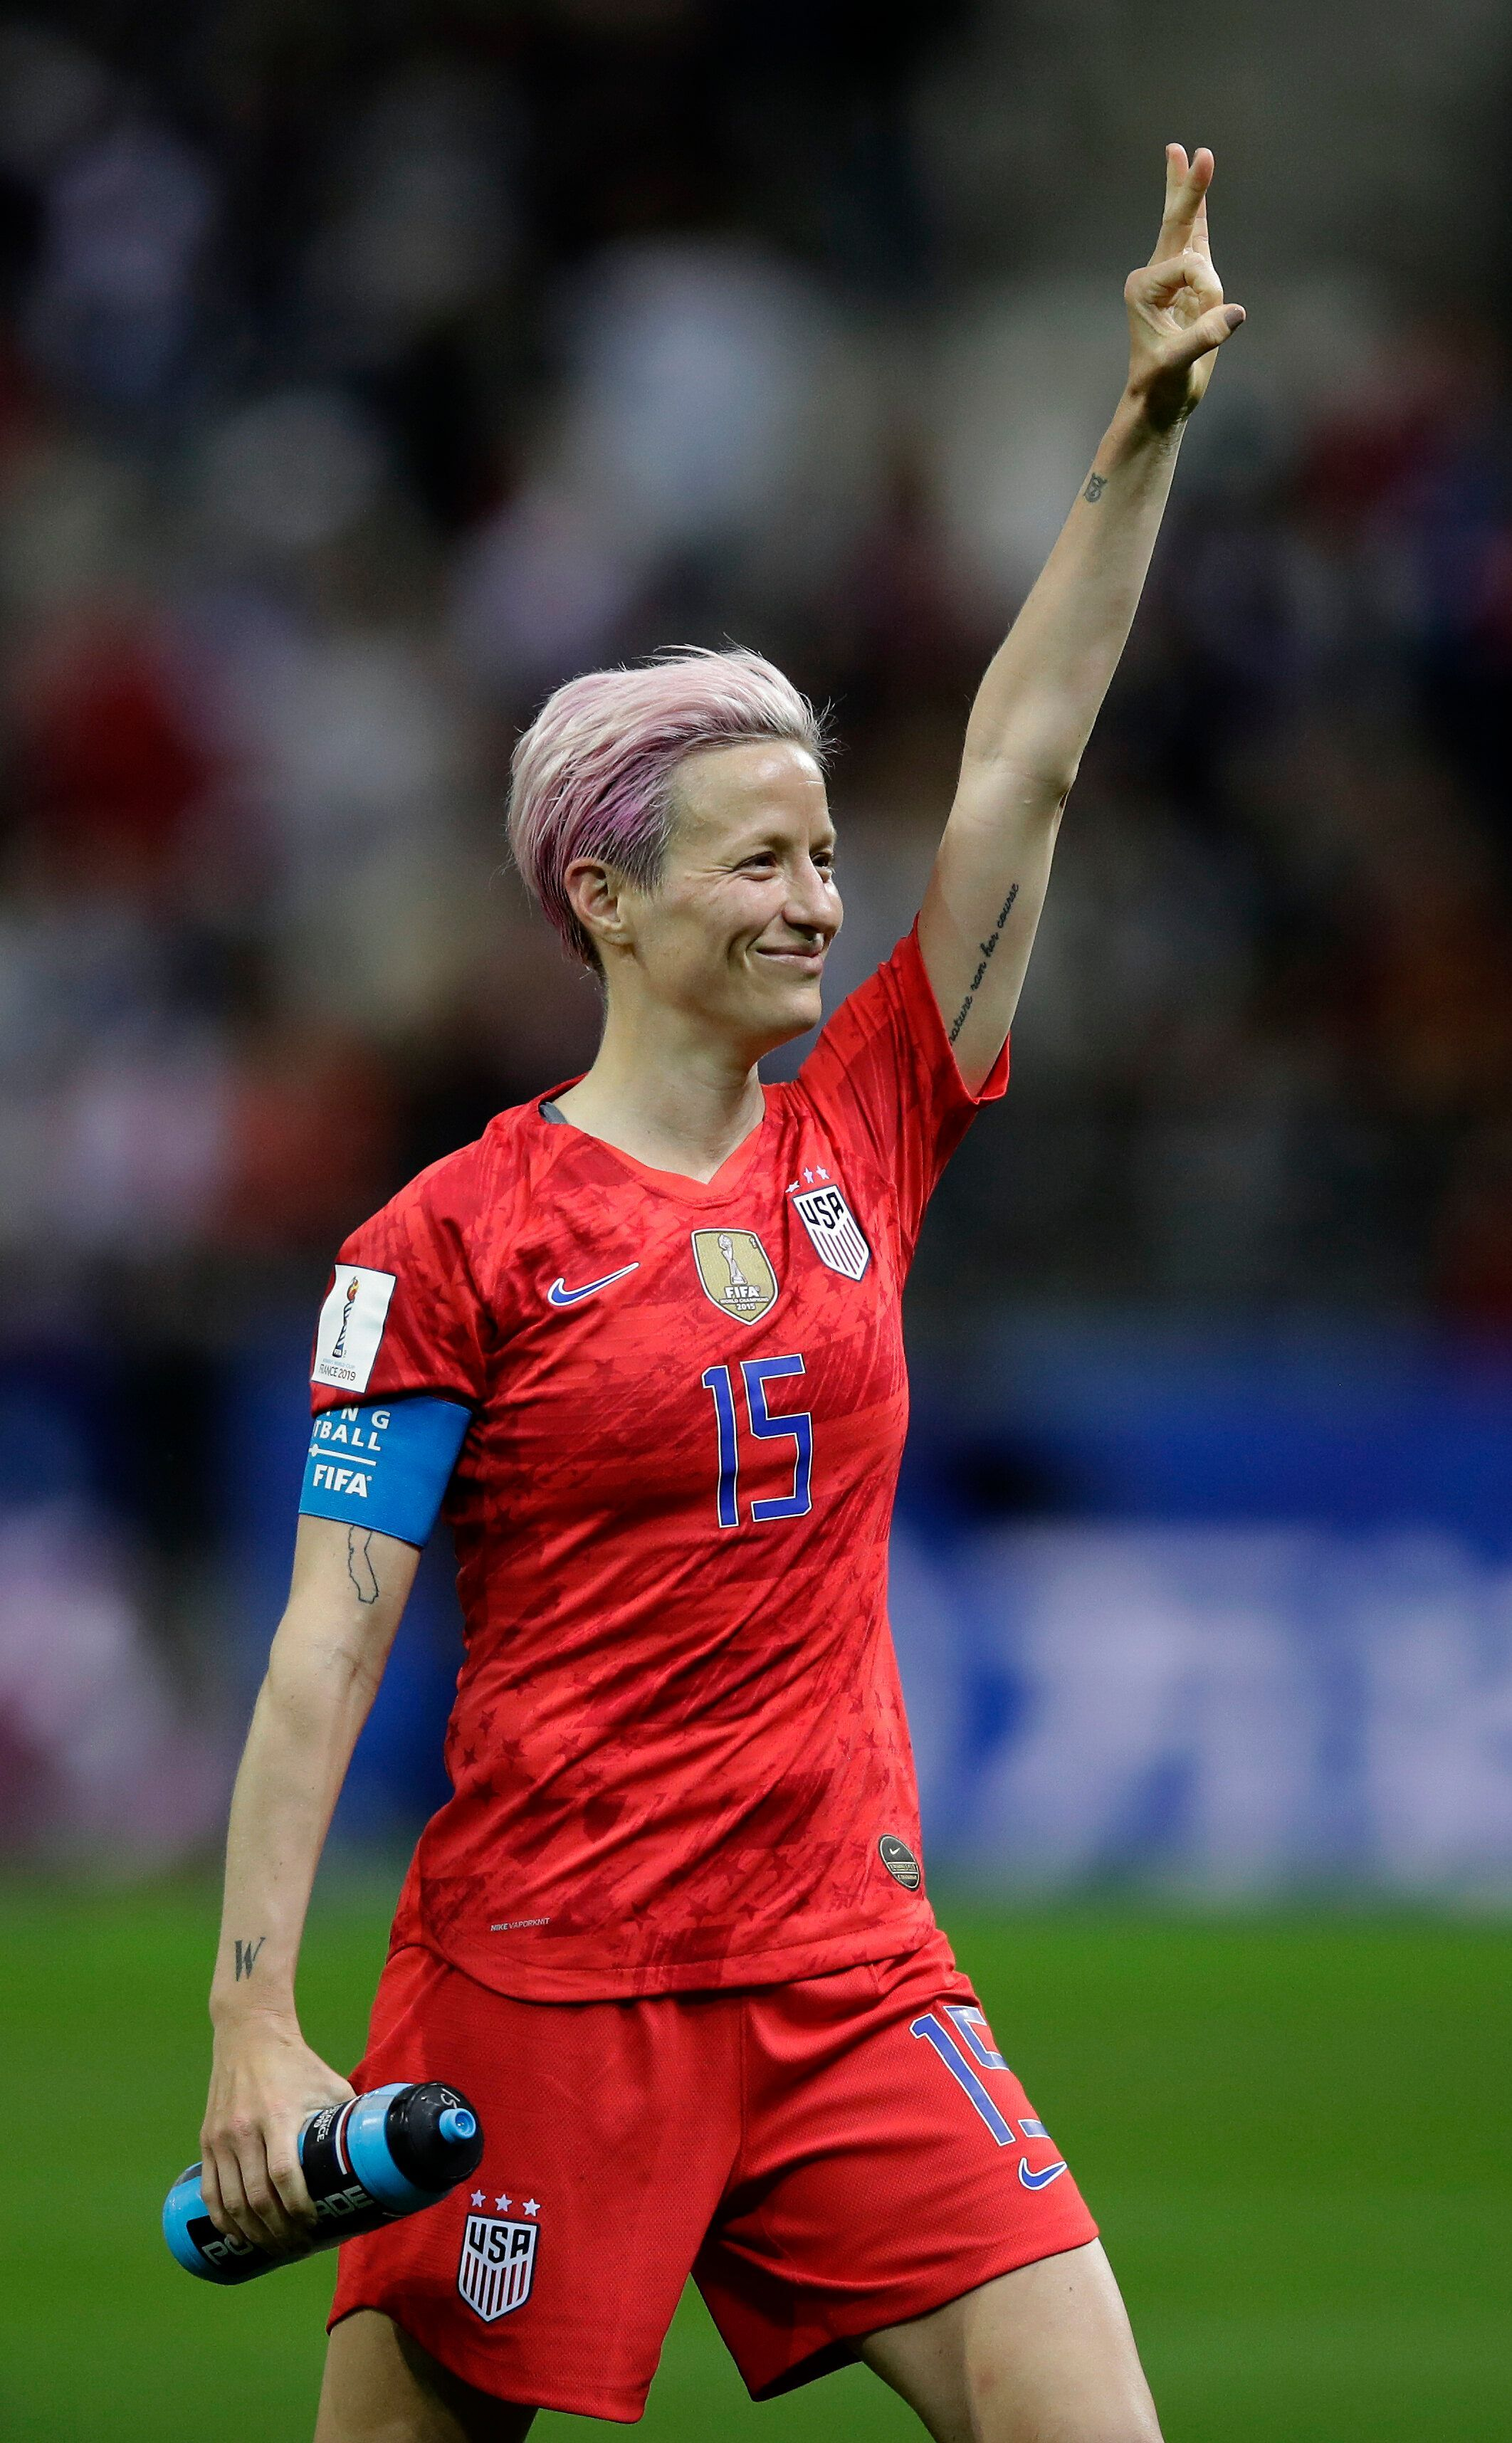 U S Soccer Star Megan Rapinoe I M Not Going To The F King White House Huffpost Girl Playing Soccer Megan Rapinoe Usa Soccer Women